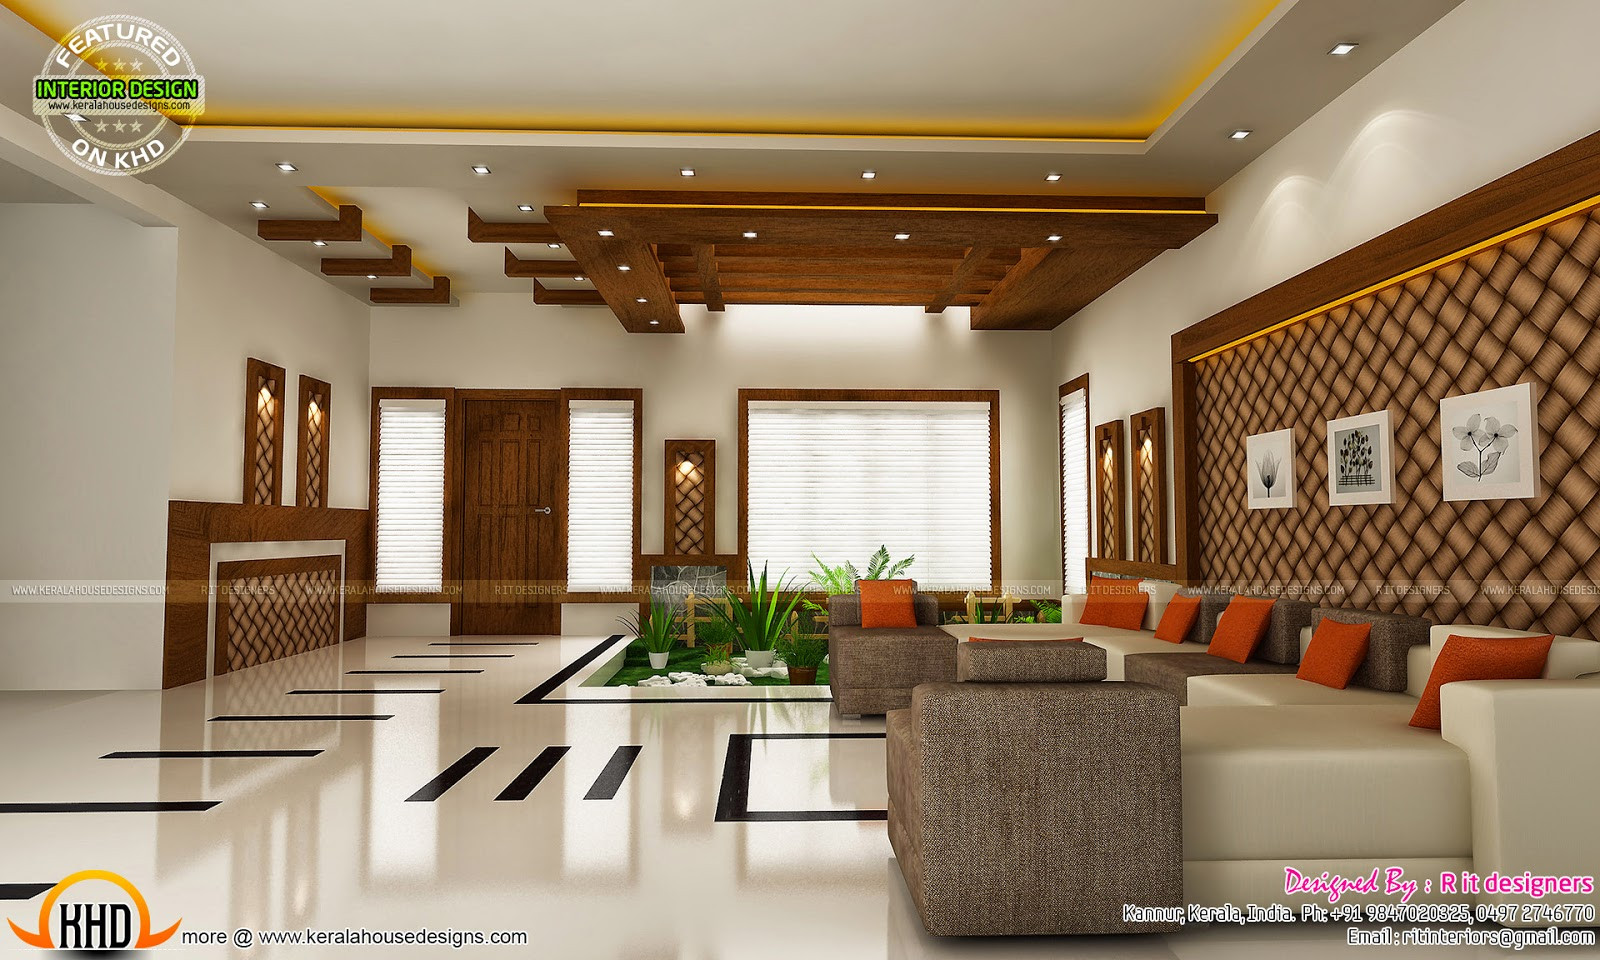 Kerala House Interiors Interior Designs Houses Smart Ideas